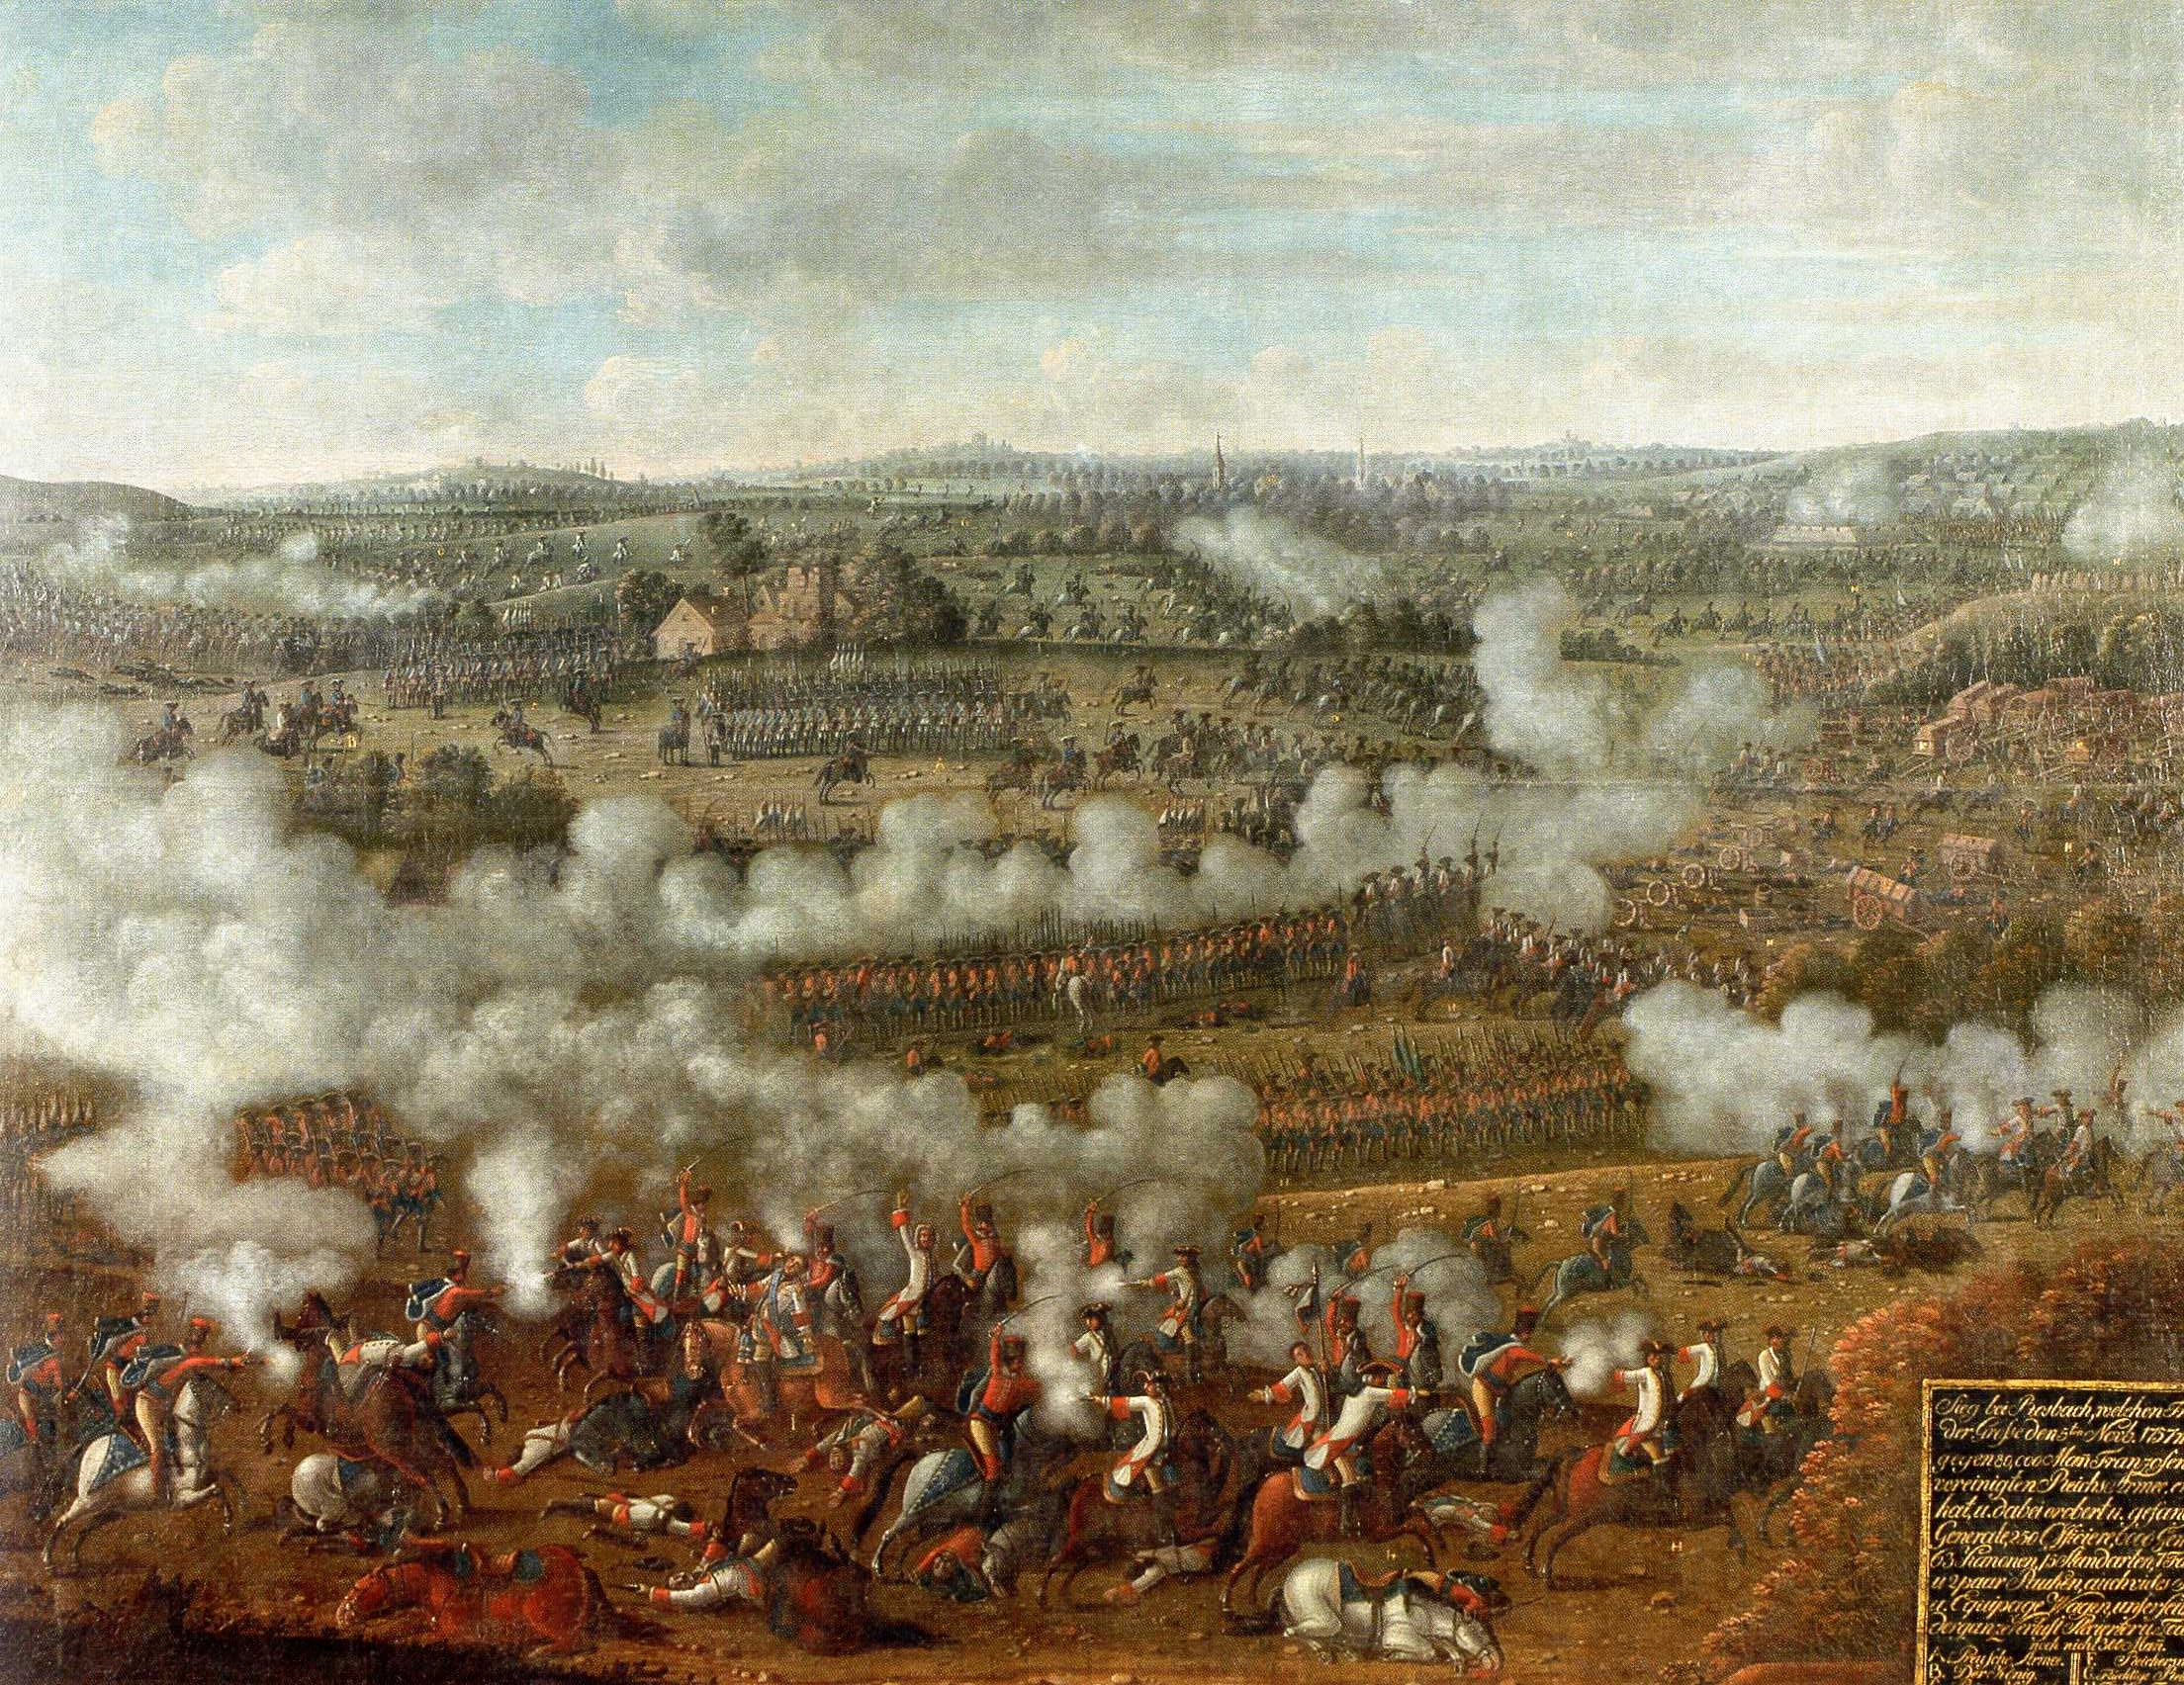 Battle of Rossbach - Wikipedia